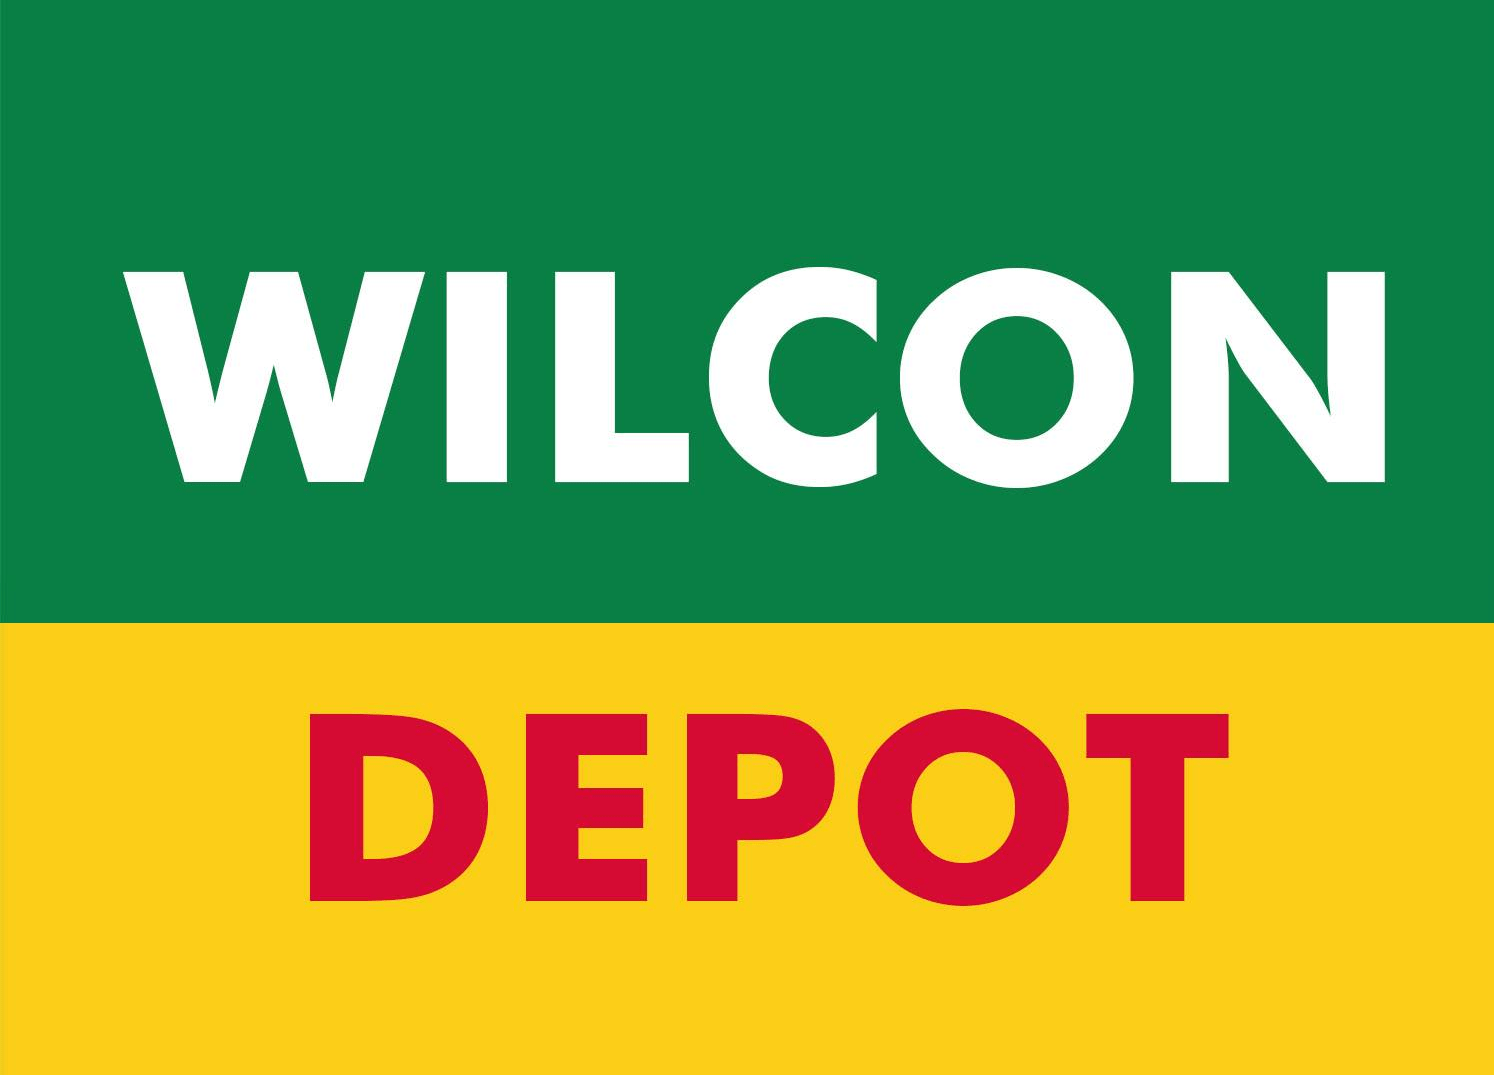 Rehau Group Seeks Expansion, Taps Wilcon Depot as Exclusive Retail Partner